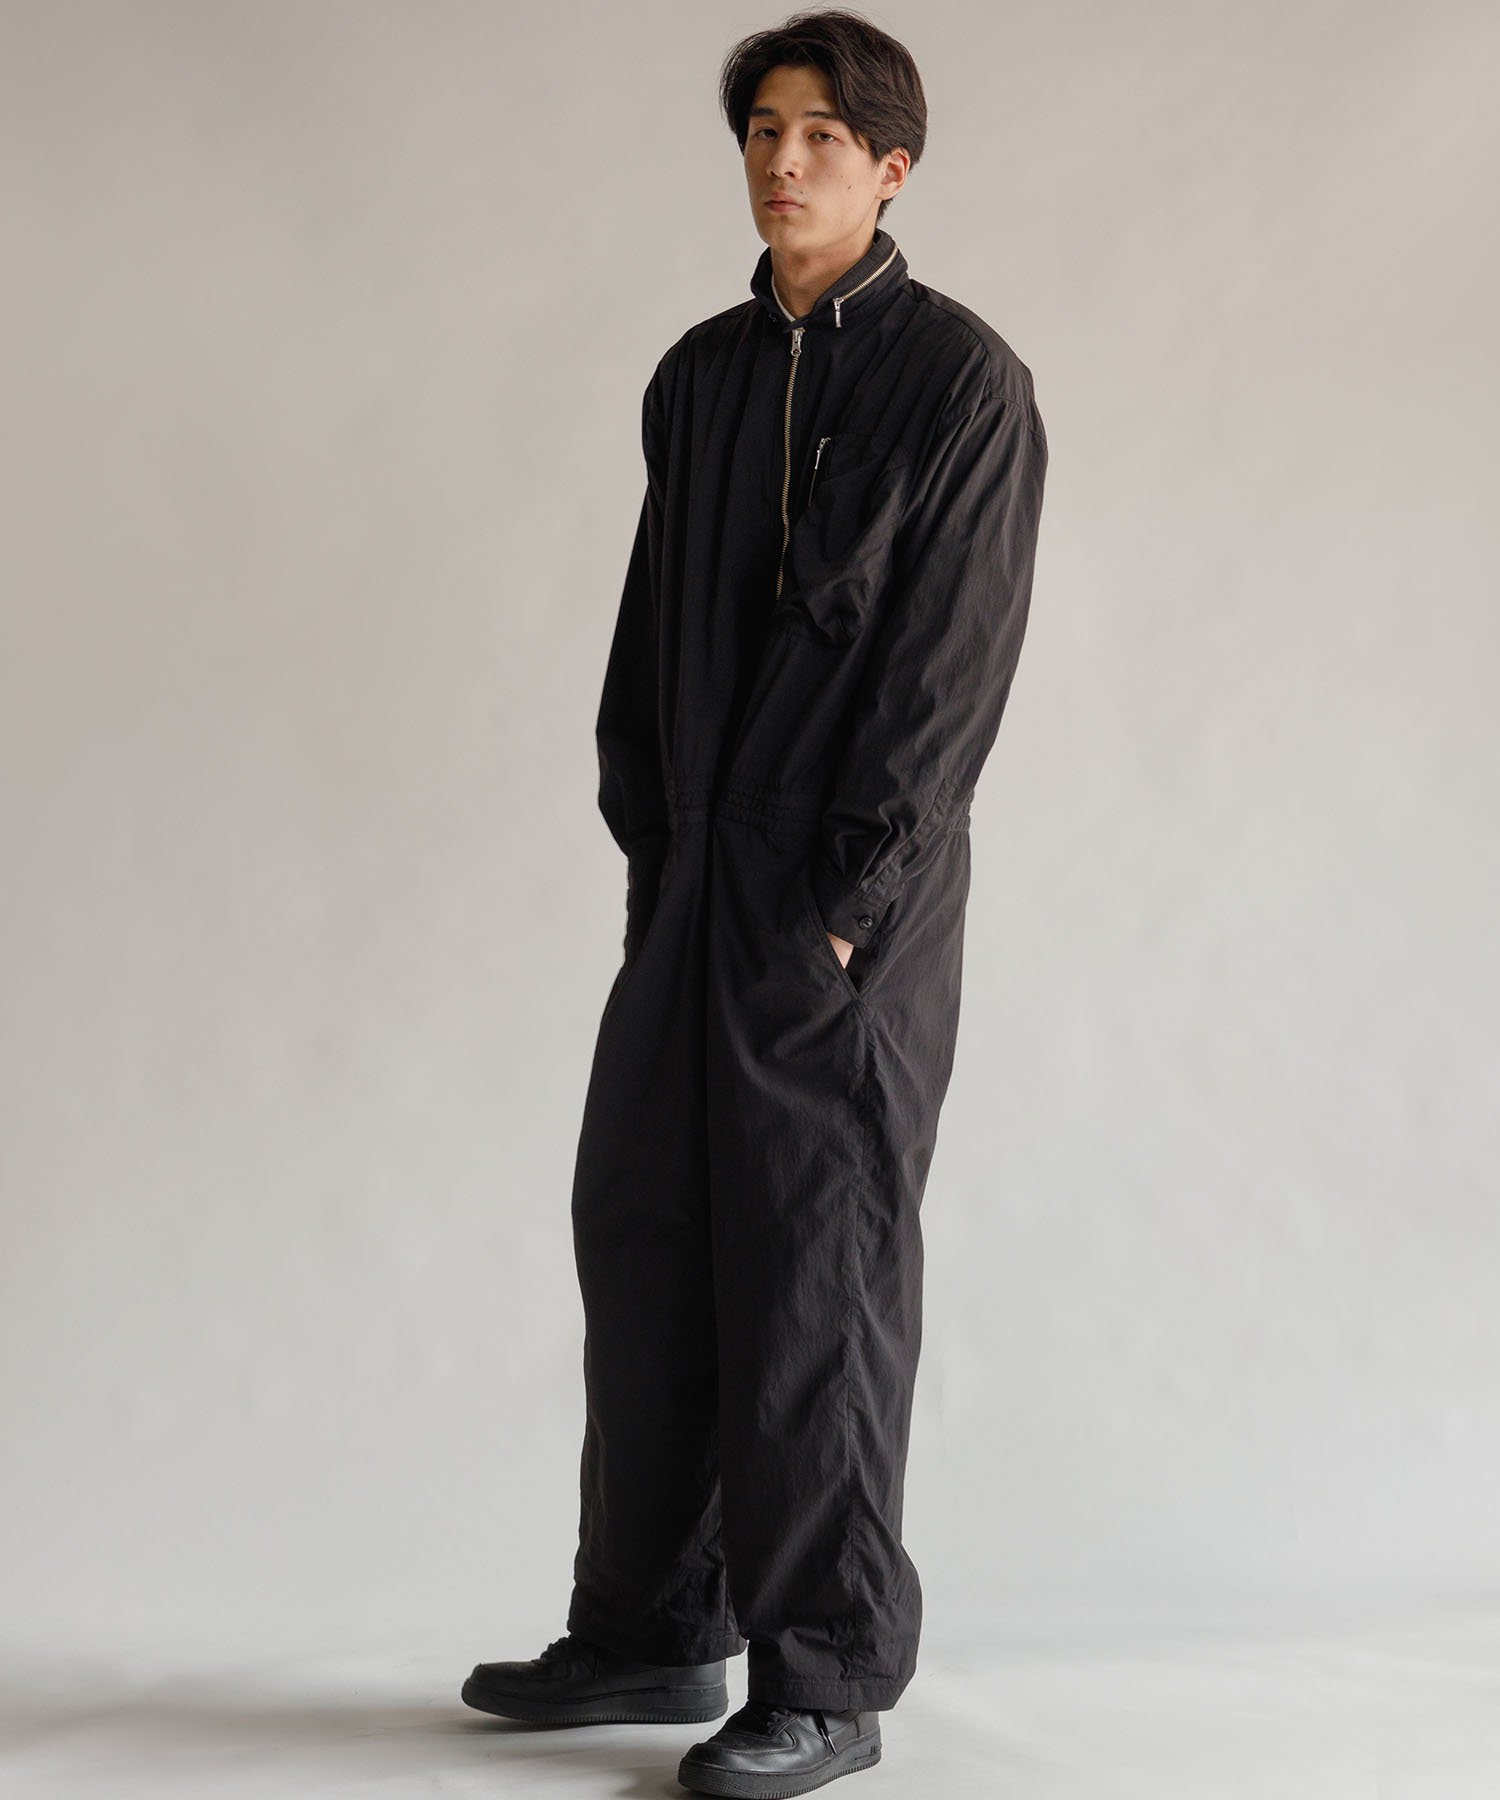 <img class='new_mark_img1' src='https://img.shop-pro.jp/img/new/icons32.gif' style='border:none;display:inline;margin:0px;padding:0px;width:auto;' />【REBIRTH PROJECT】GNB jumpsuit BLK